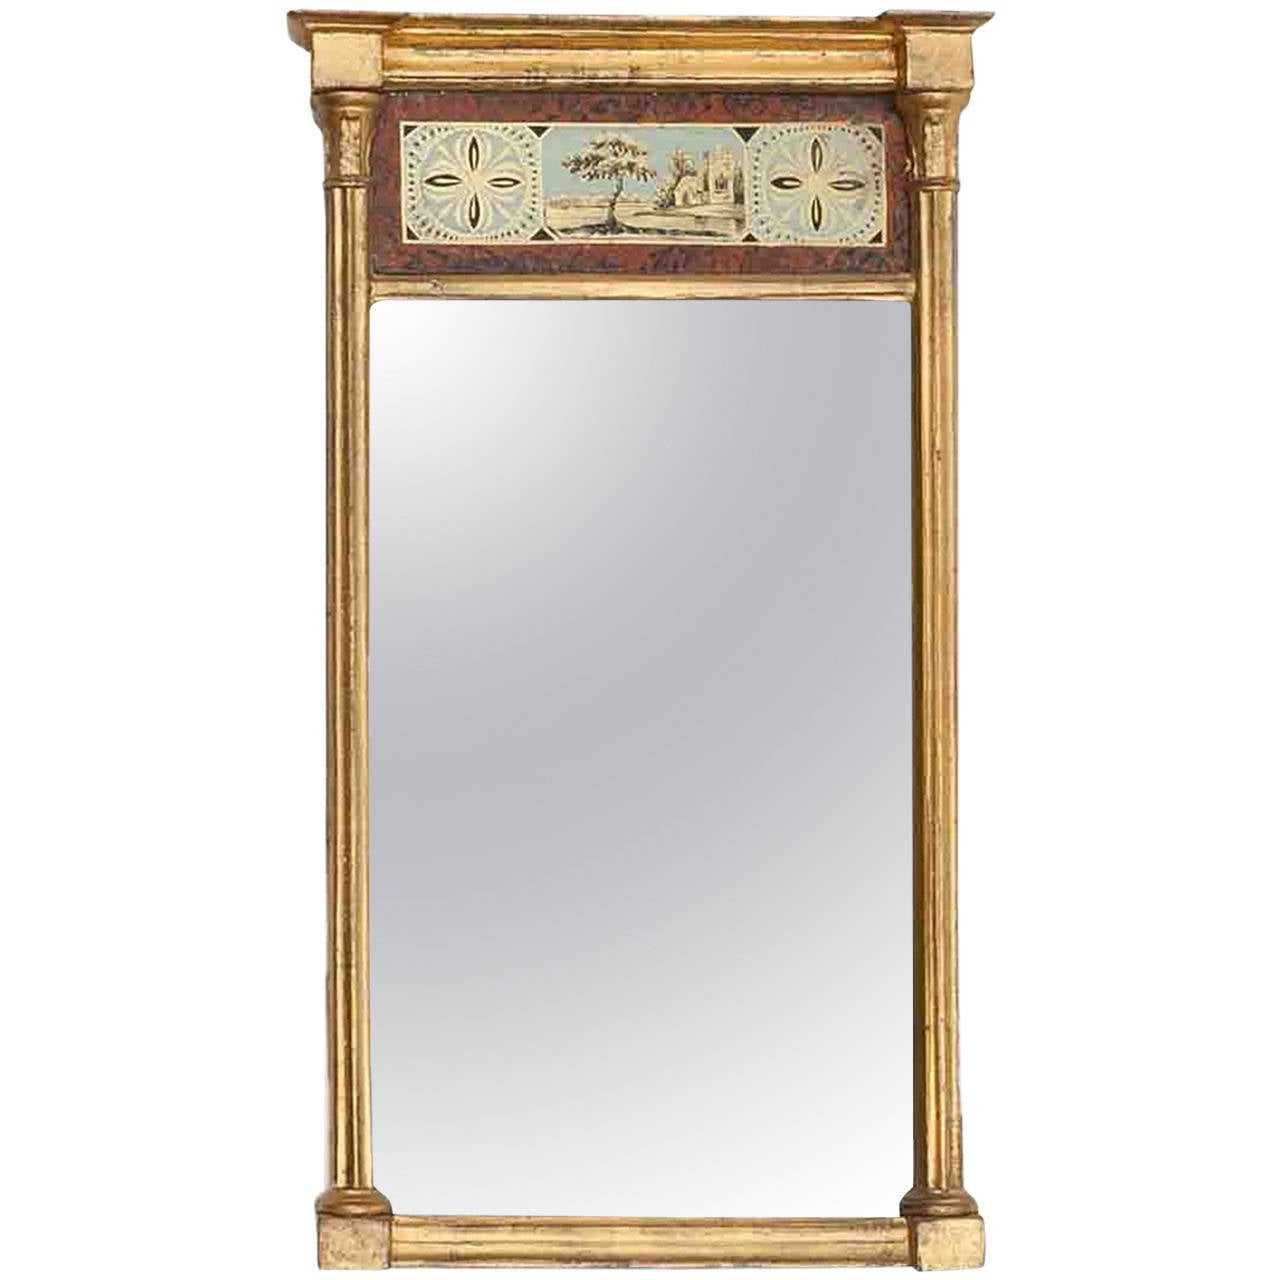 Early 19th Century American Verre Eglomise Wall Mirror